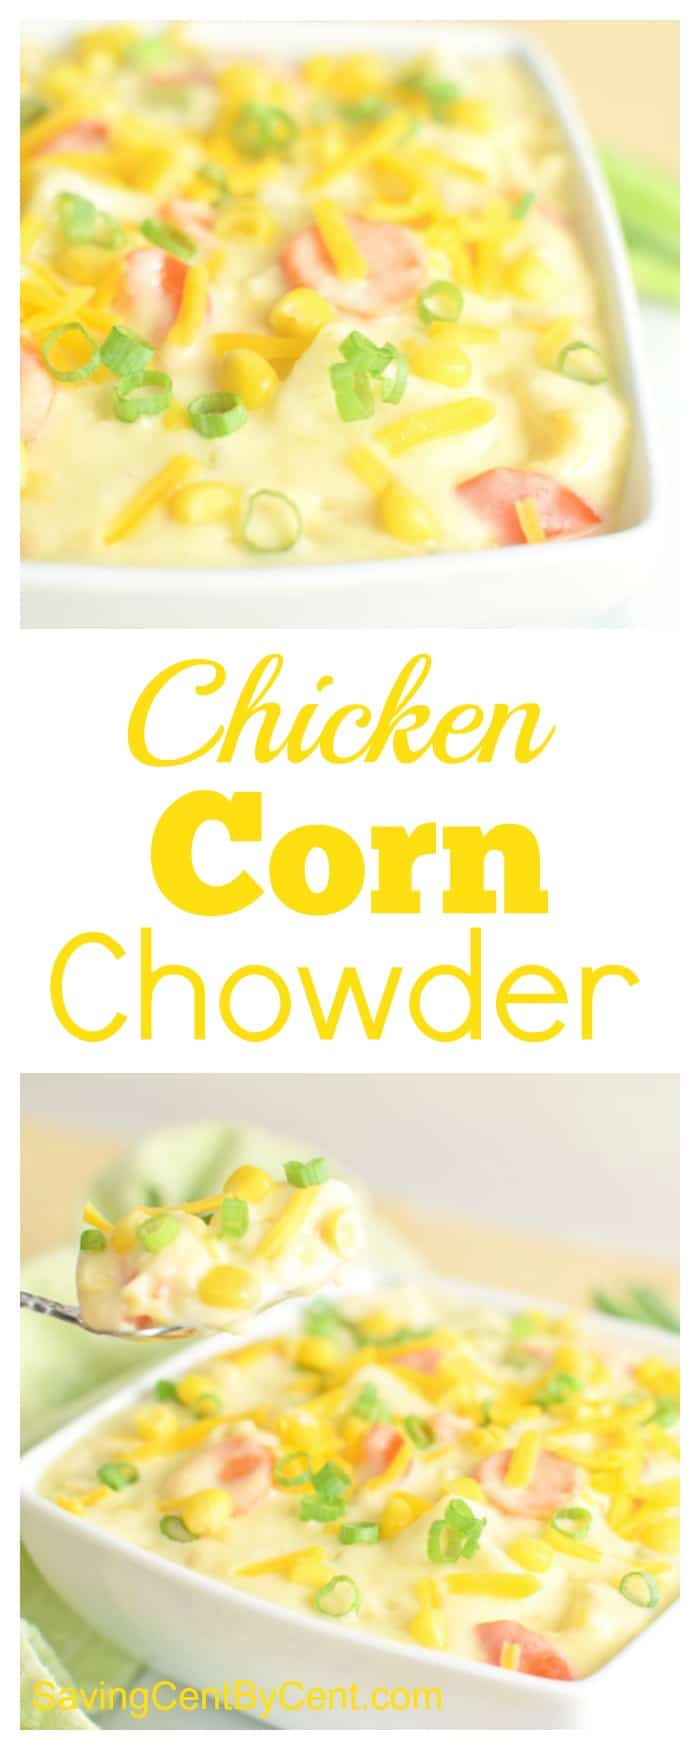 Chicken Corn Chowder Soup